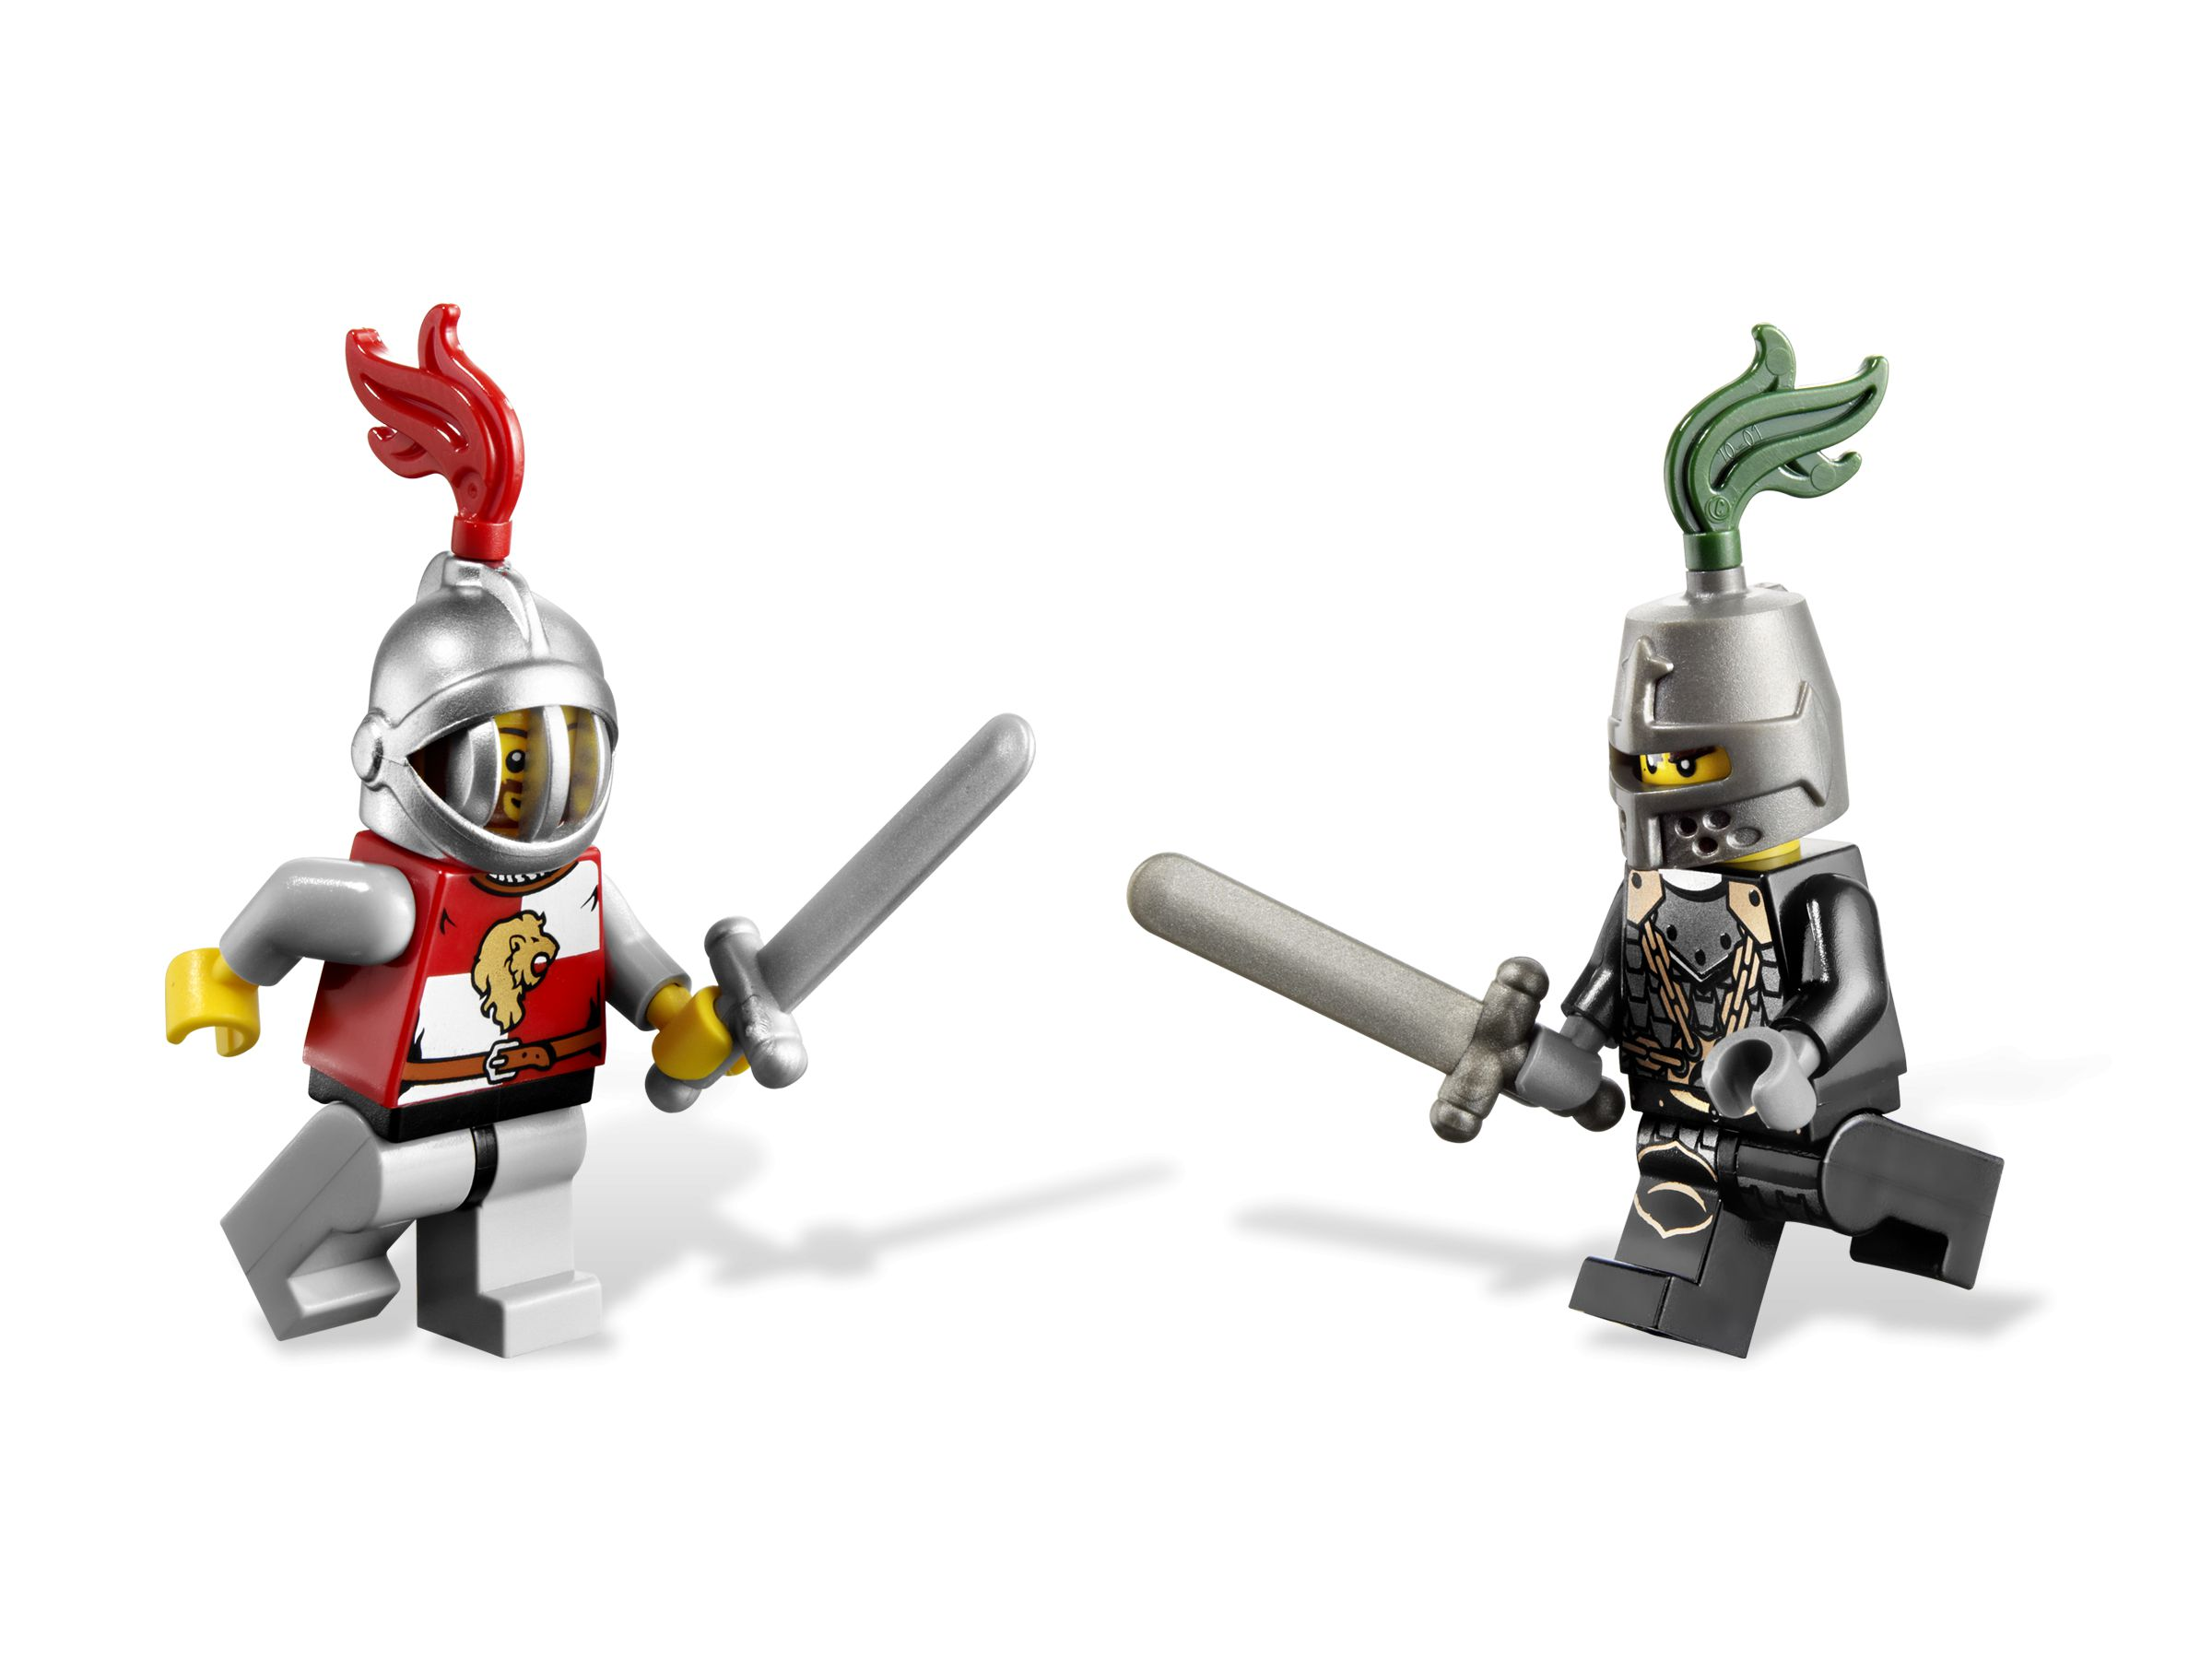 LEGO Castle 7950 Knight's Showdown LEGO_7950_alt2.jpg